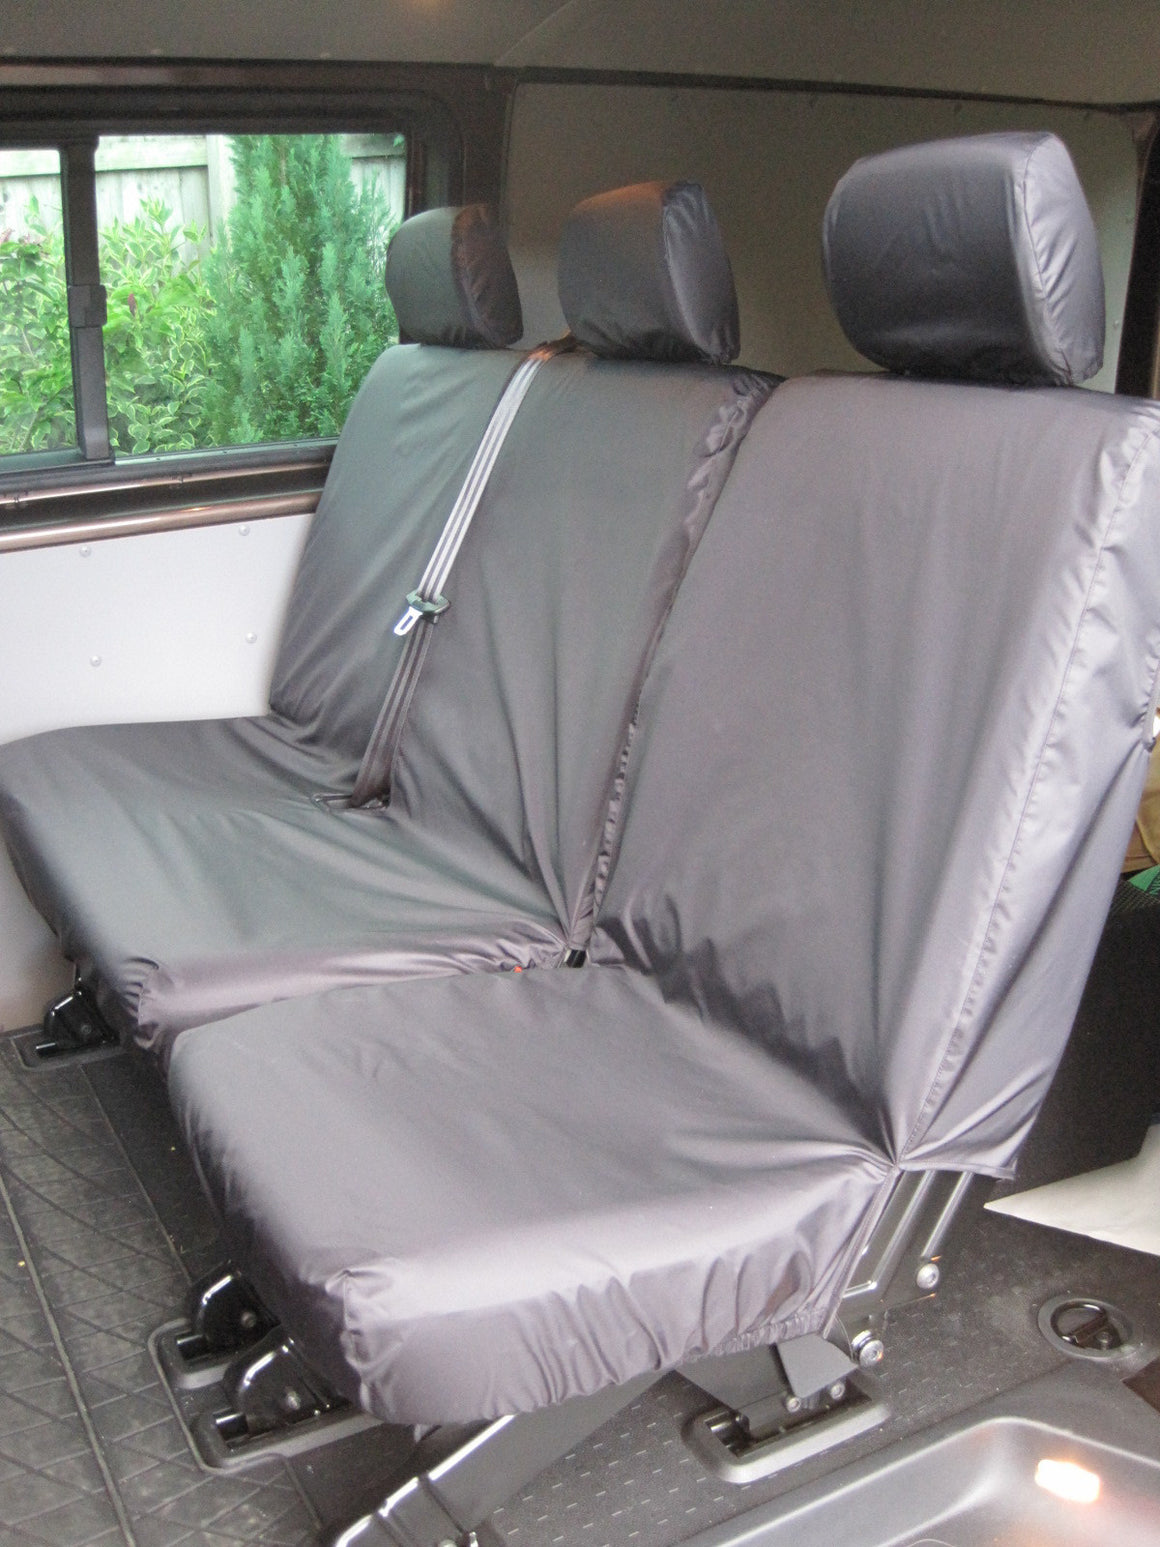 VW Volkswagen Transporter T5 Kombi 2003-2009 Rear Seat Covers